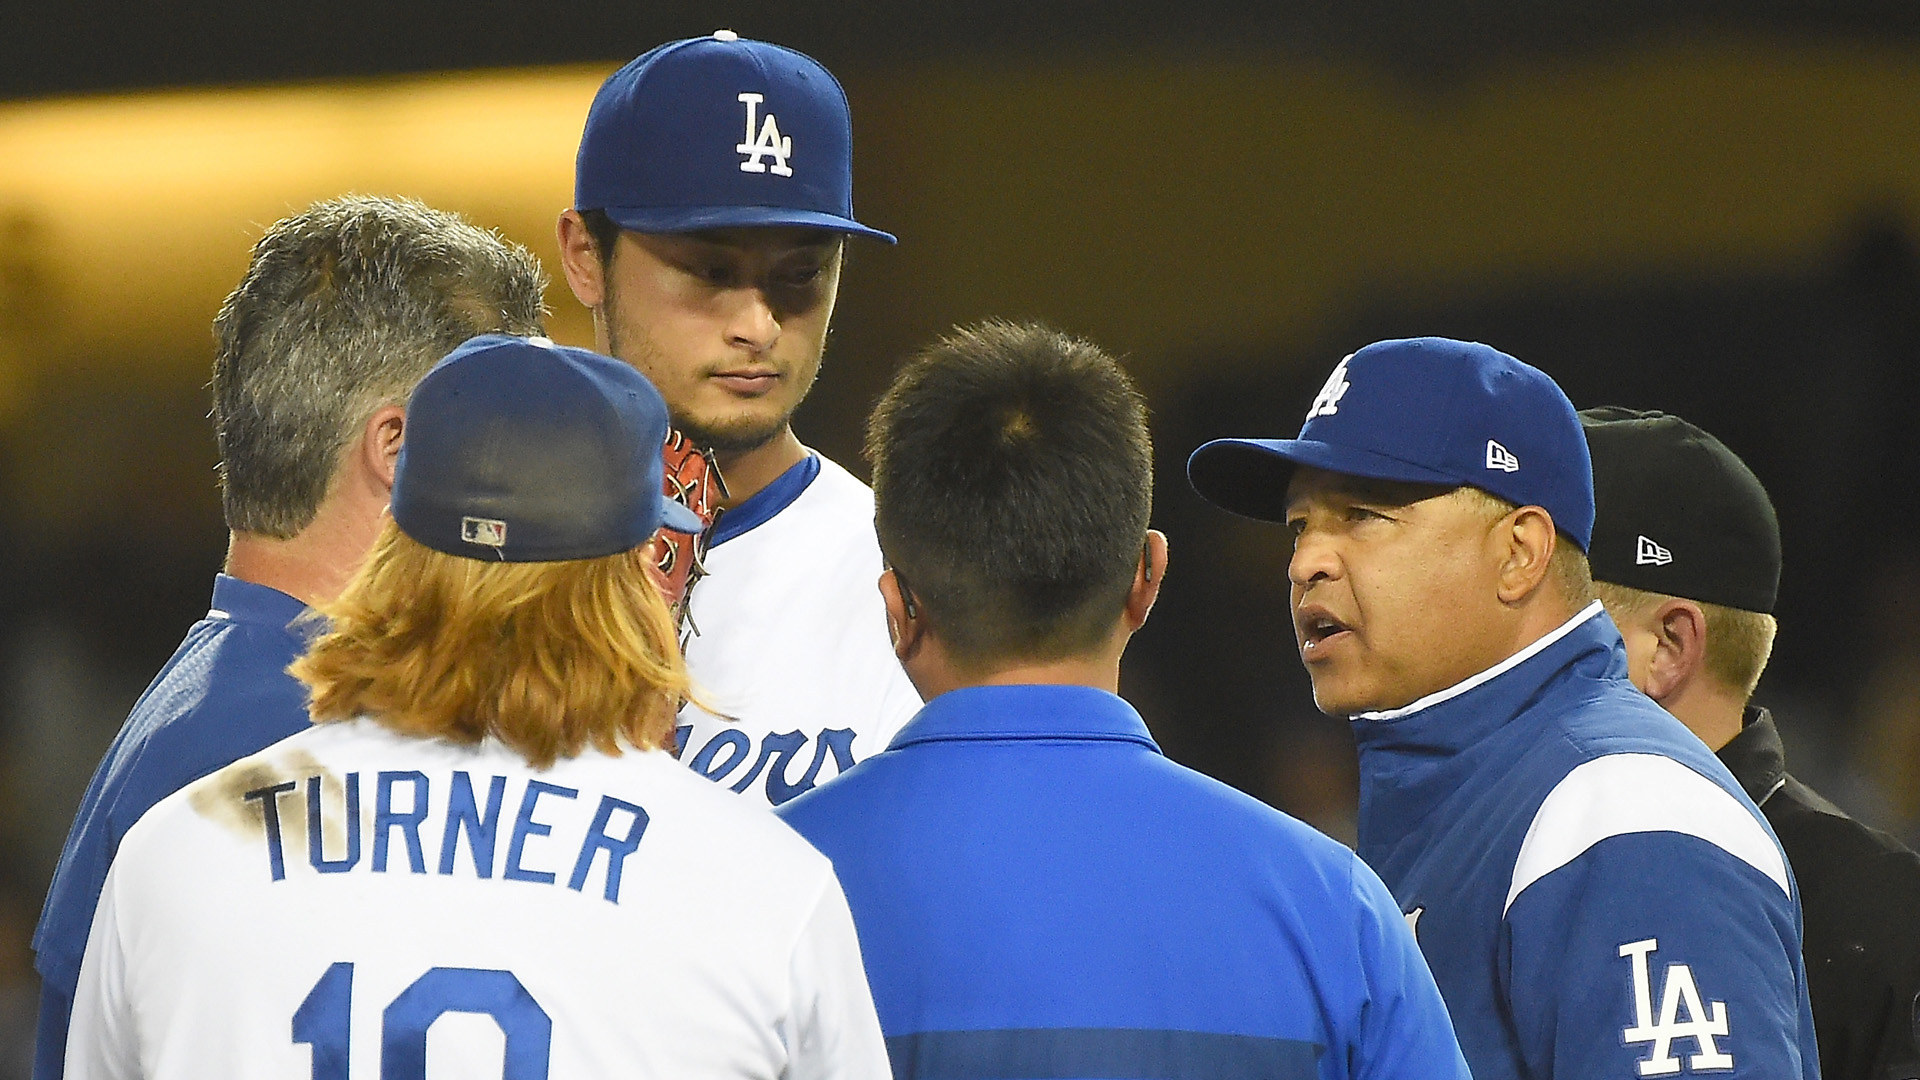 Los Angeles Dodgers Baseball - Dodgers News, Scores, Stats, Rumors & More